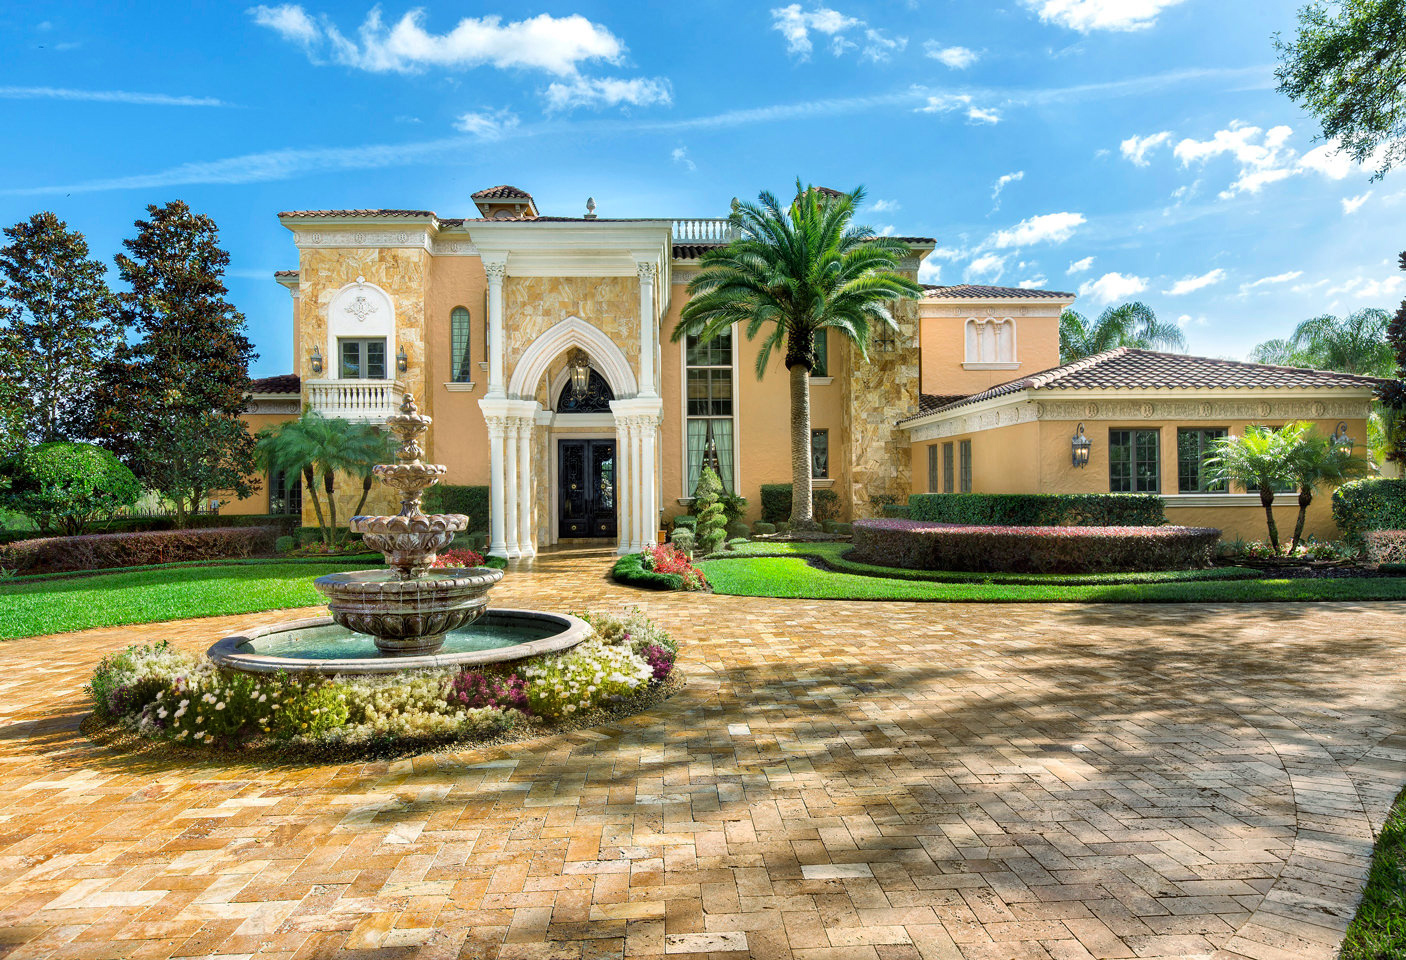 Florida mega mansions for sale affordable court of for Mega homes for sale